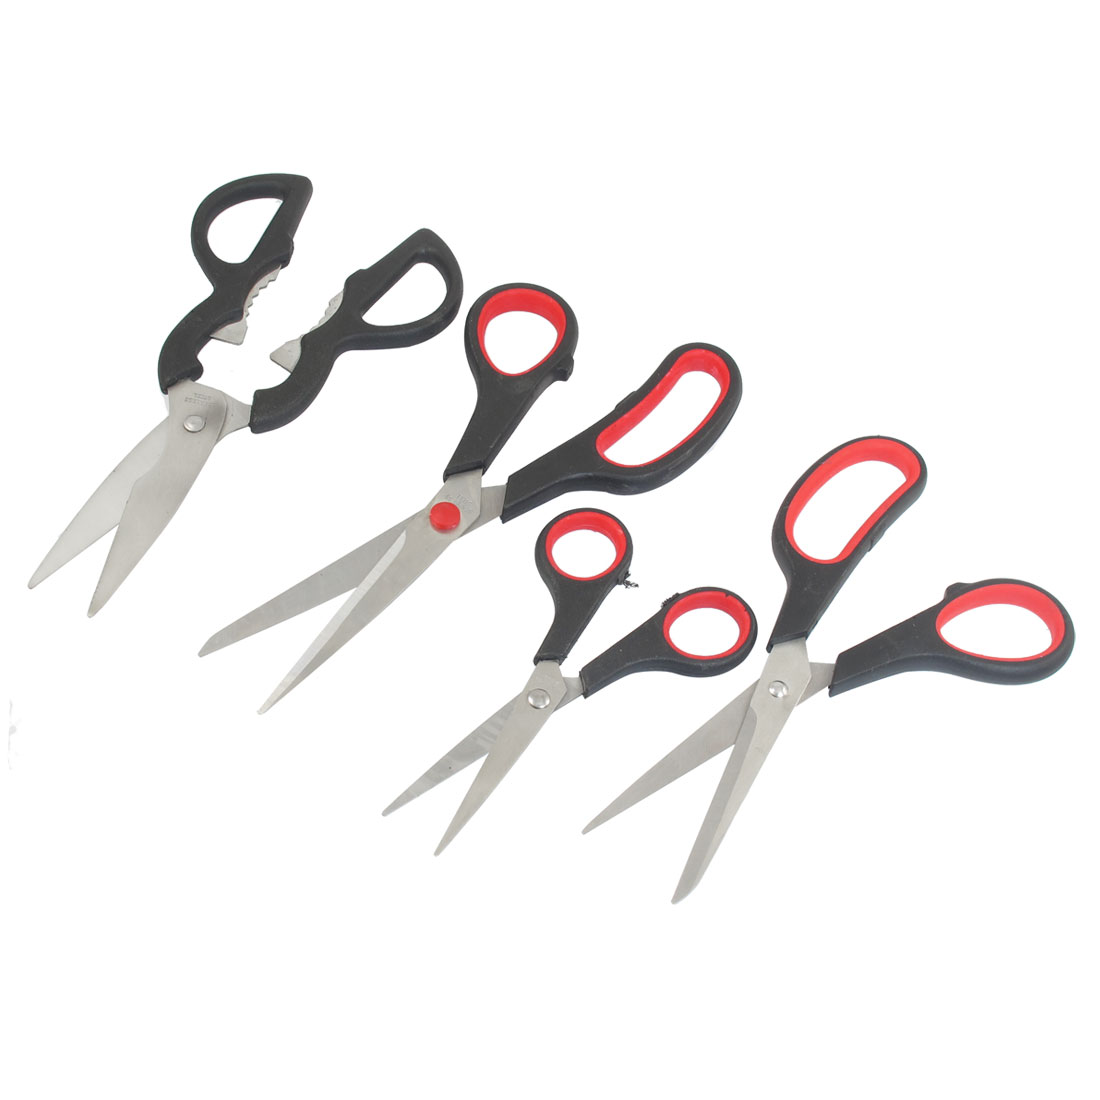 4 in 1 Assorted Size Stainless Stell Blade Kitchen Vegetable Scissor Set